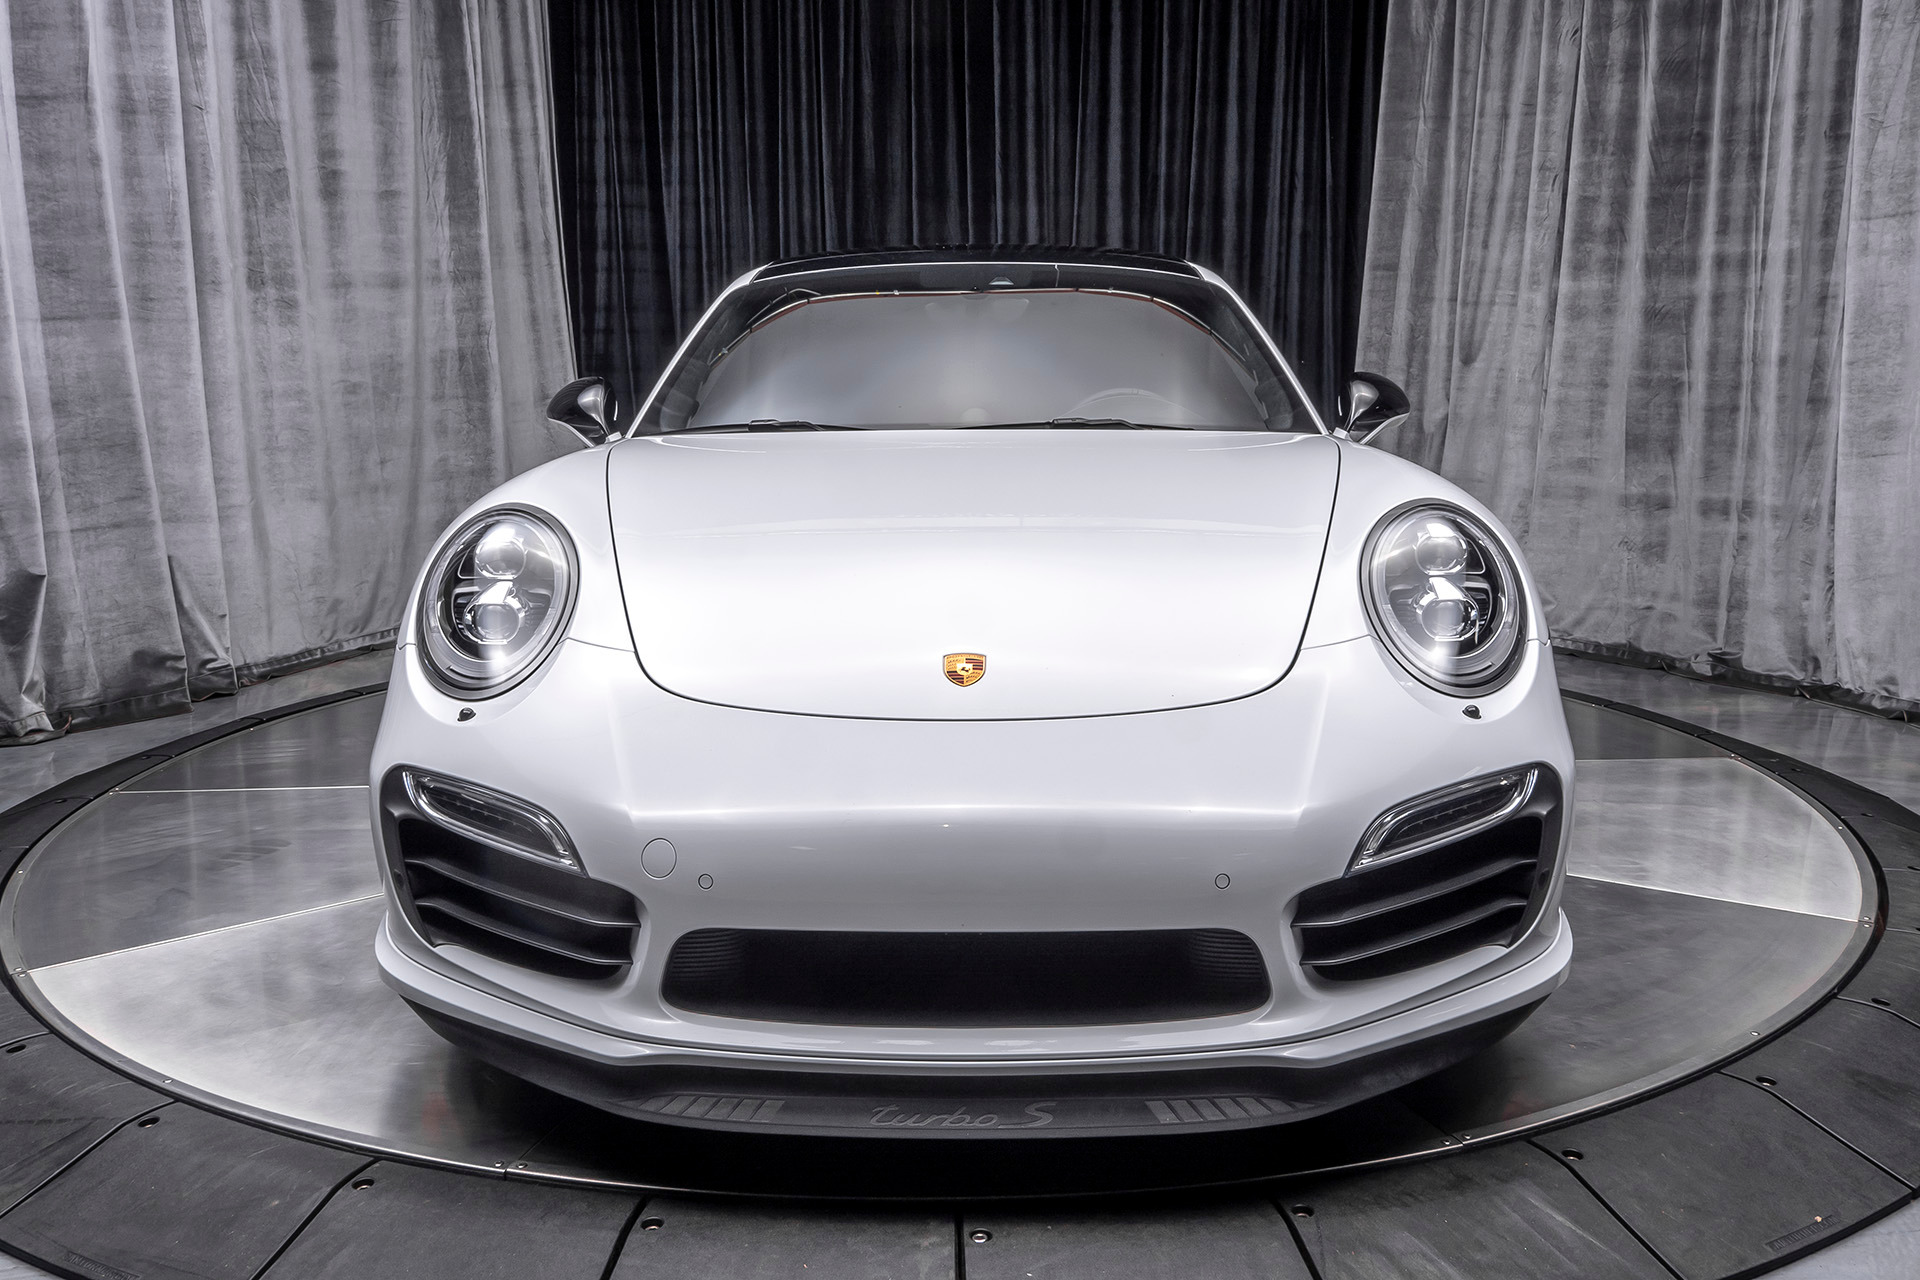 Used-2015-Porsche-911-Turbo-S-Coupe-MSRP-197K-LOADED-WITH-UPGRADES